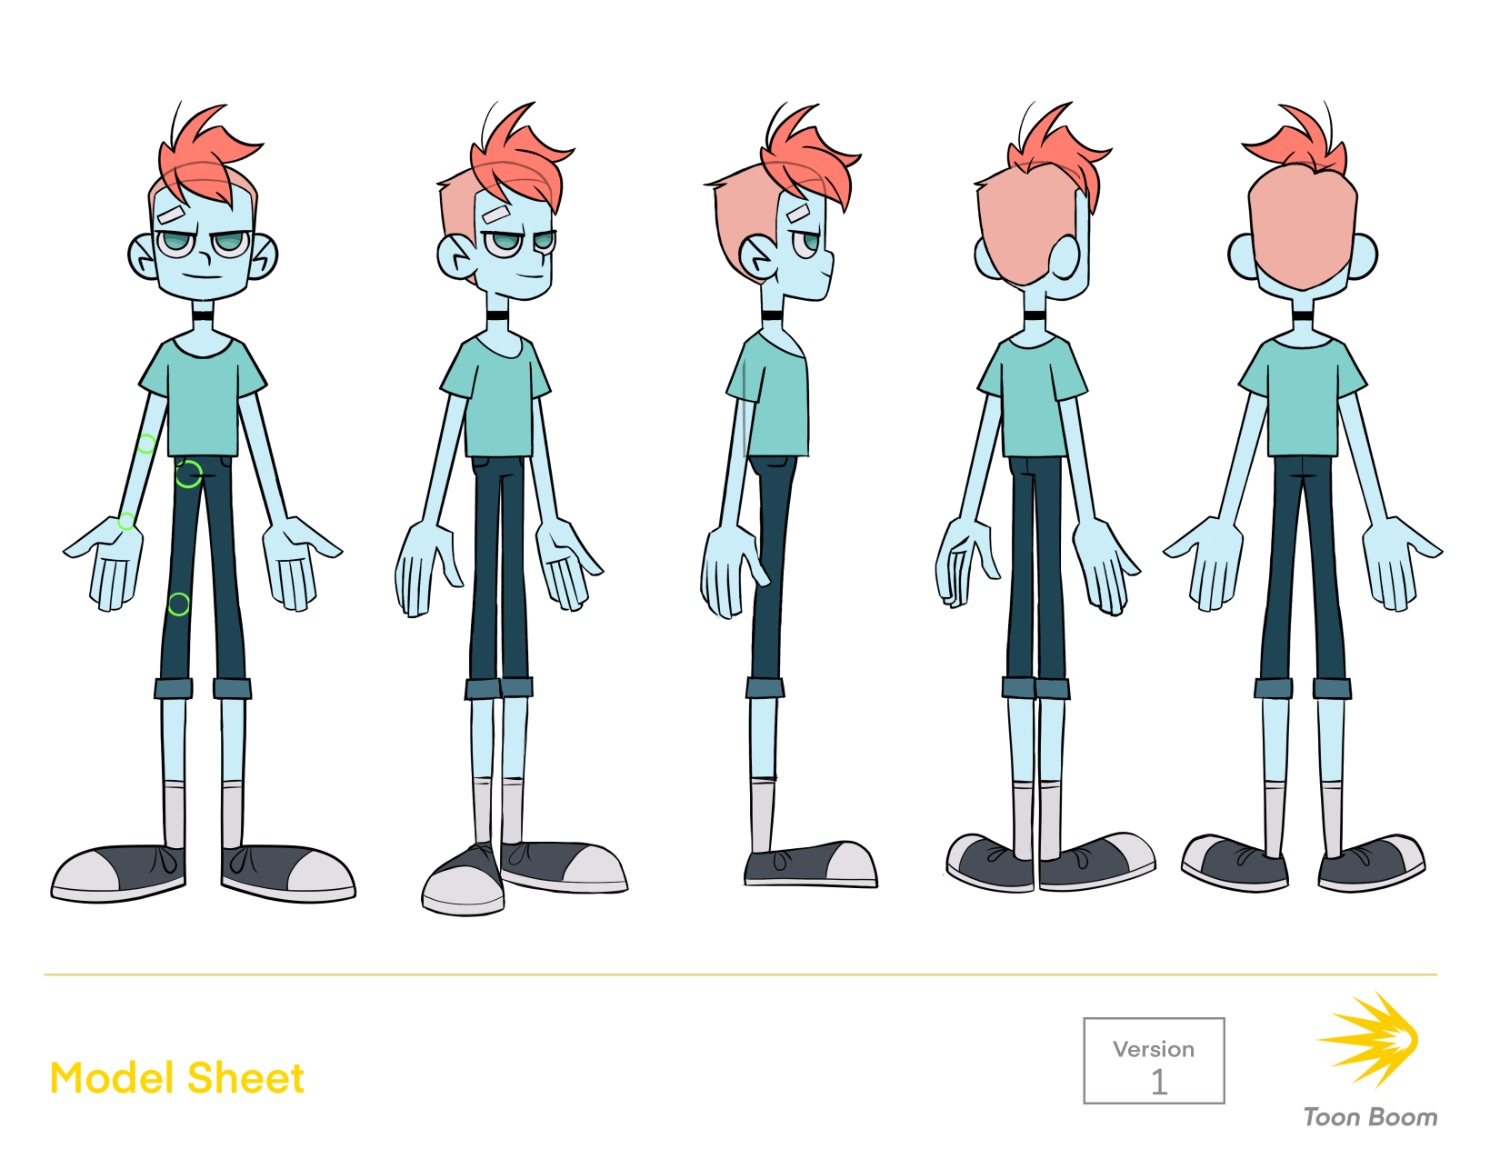 Matt Watts model sheet